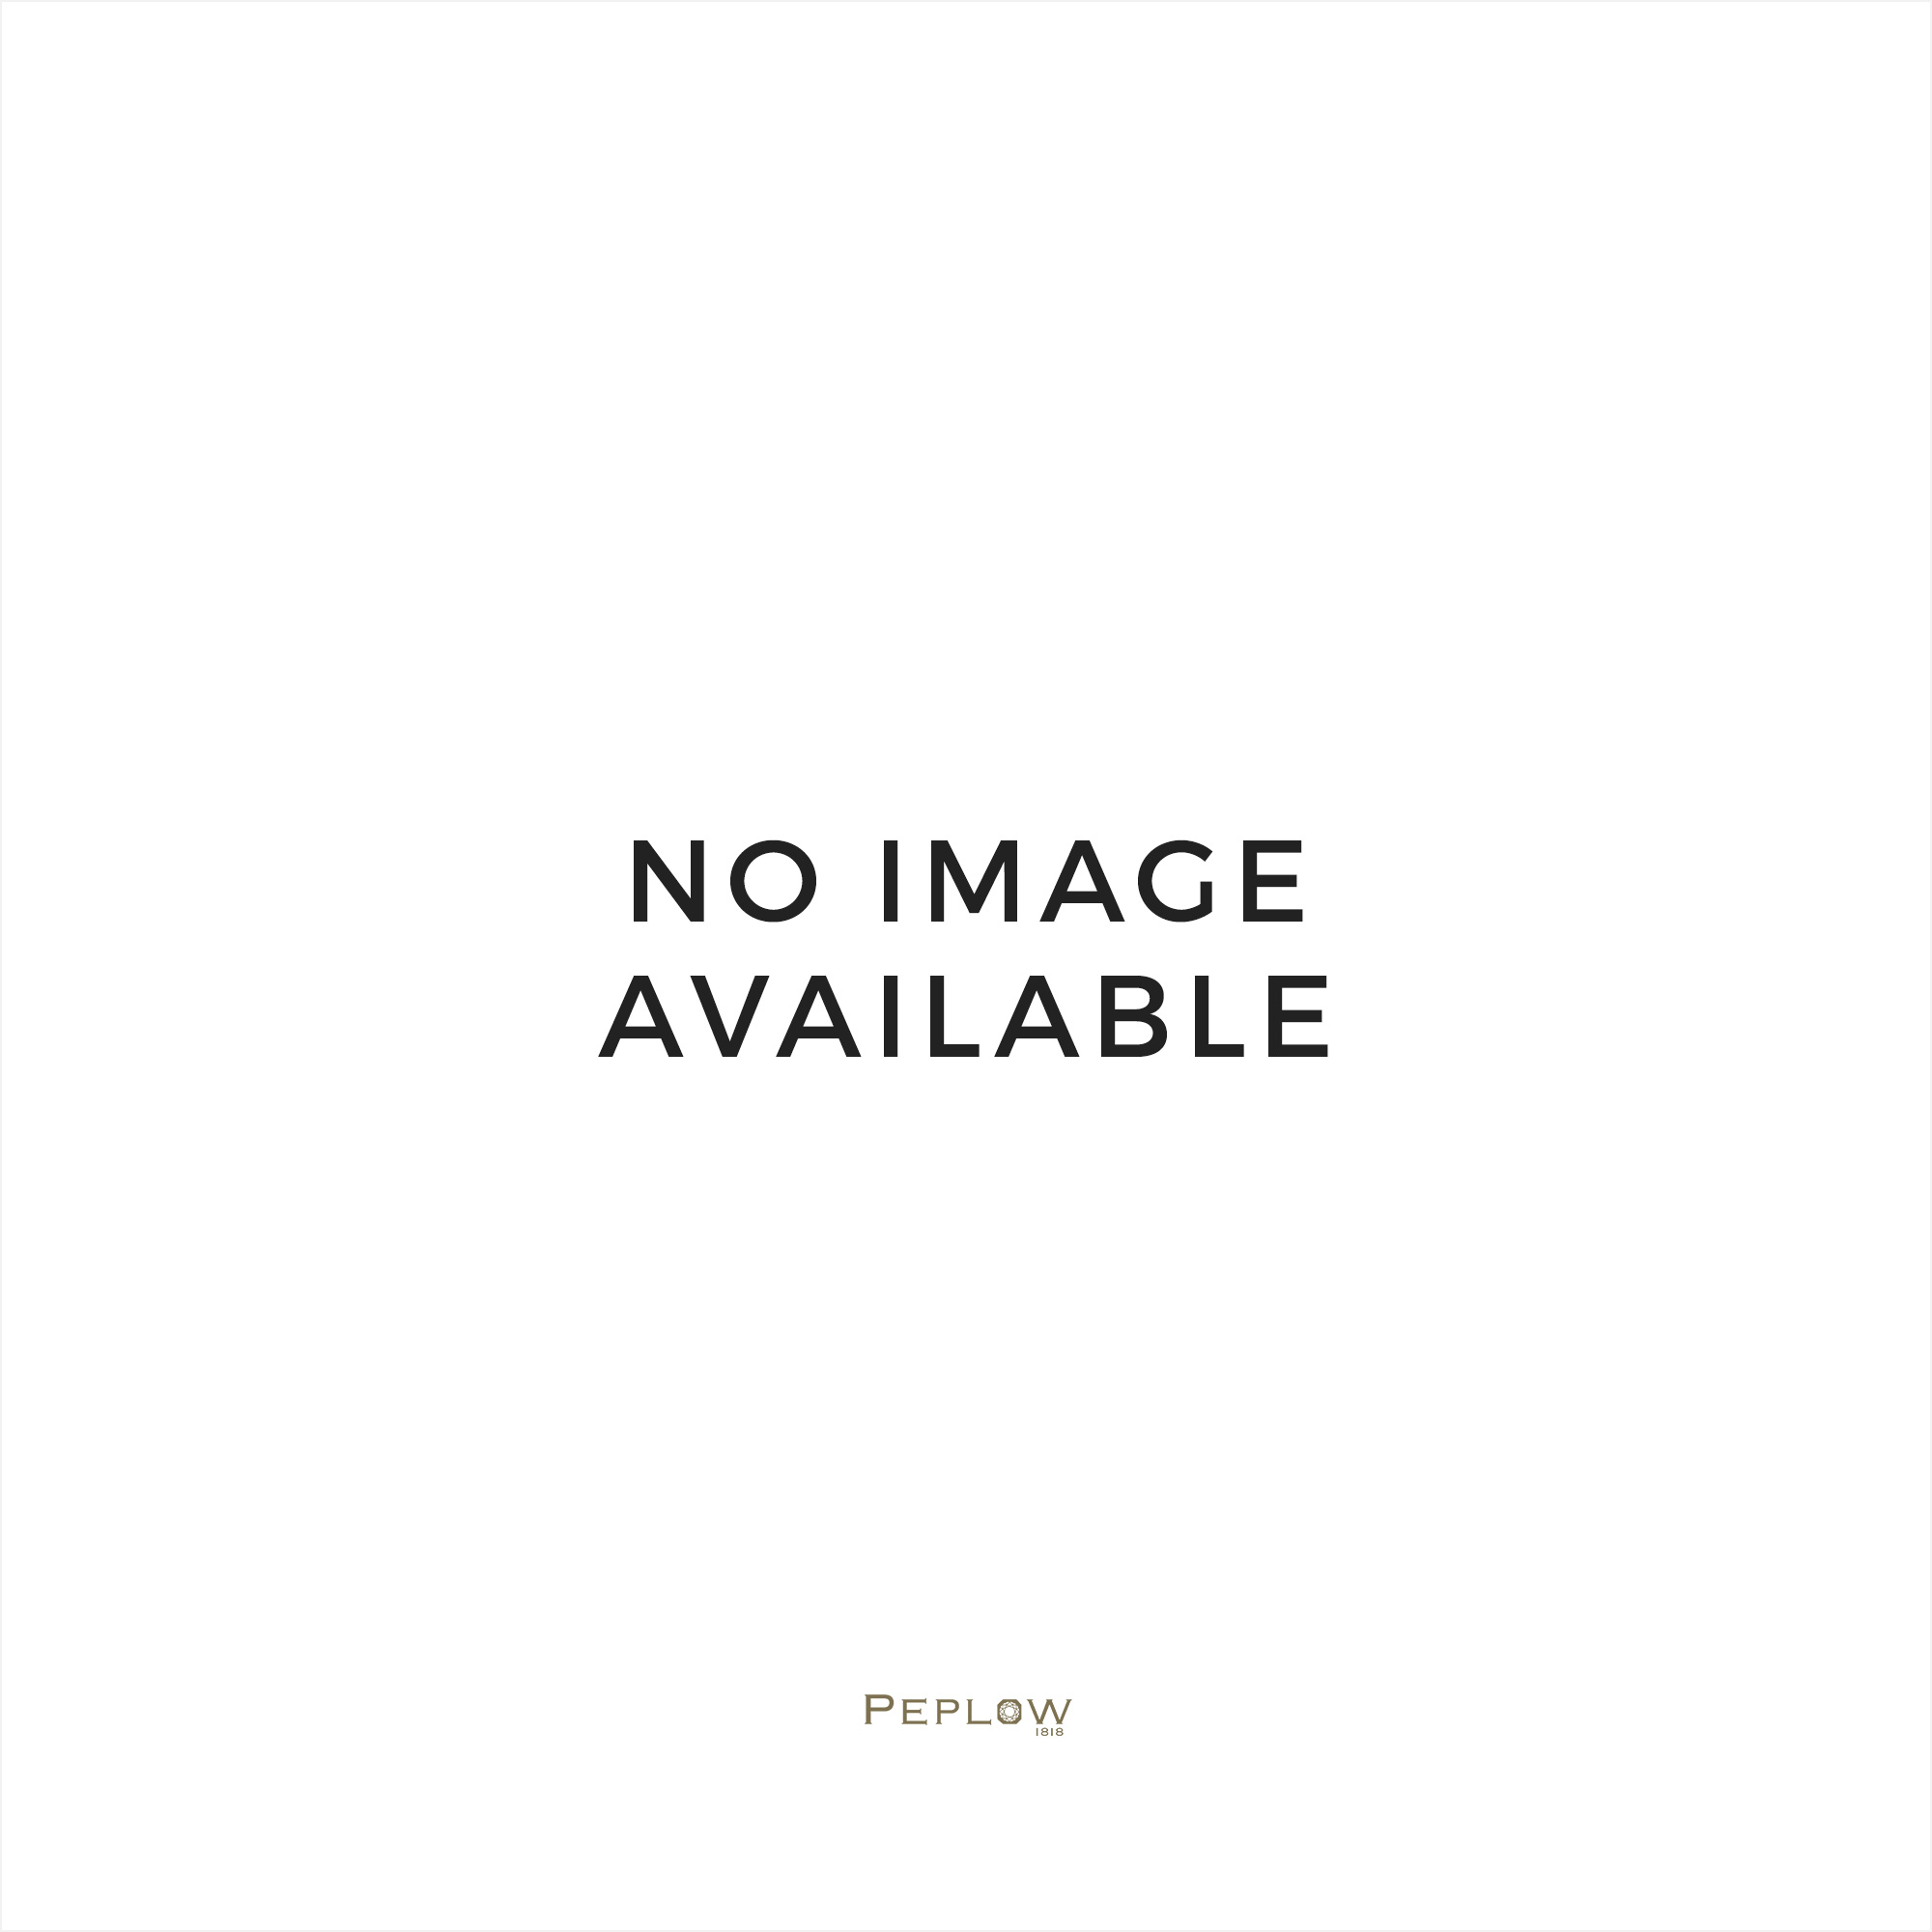 Seiko Watches Ladies steel Seiko quartz bracelet watch SRZ505P1